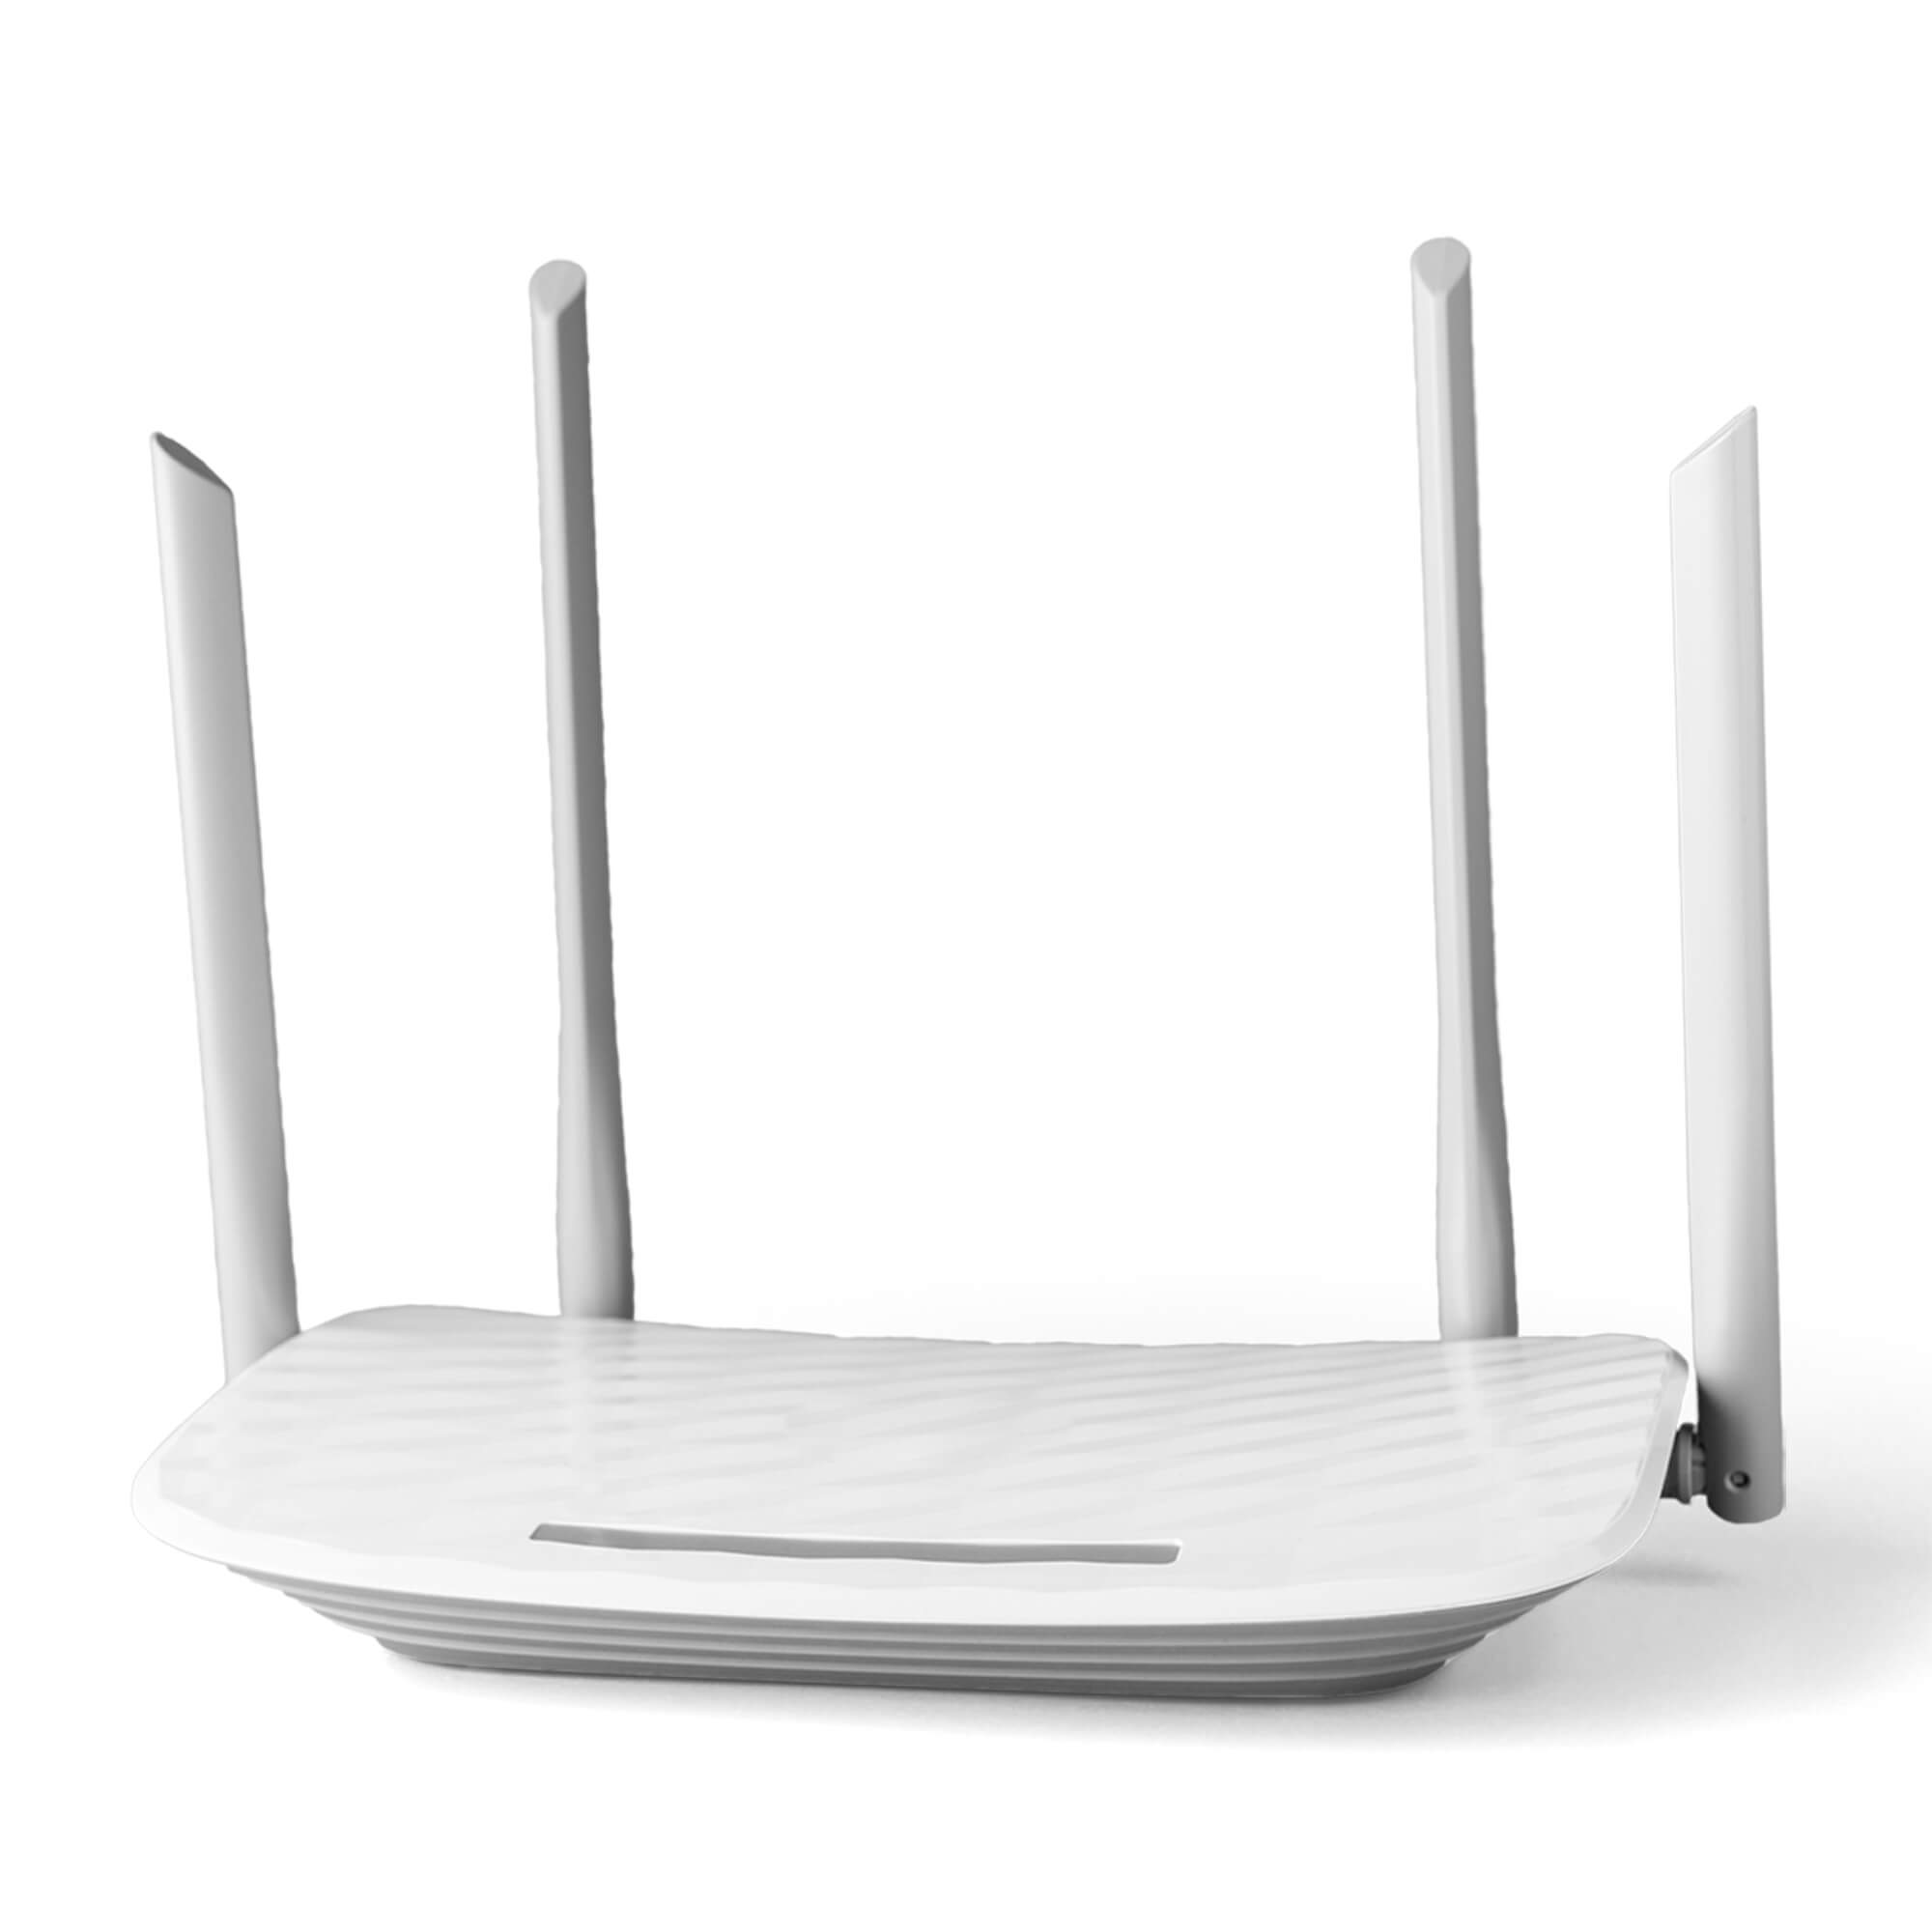 Blank Free Router Mockup PSD Template